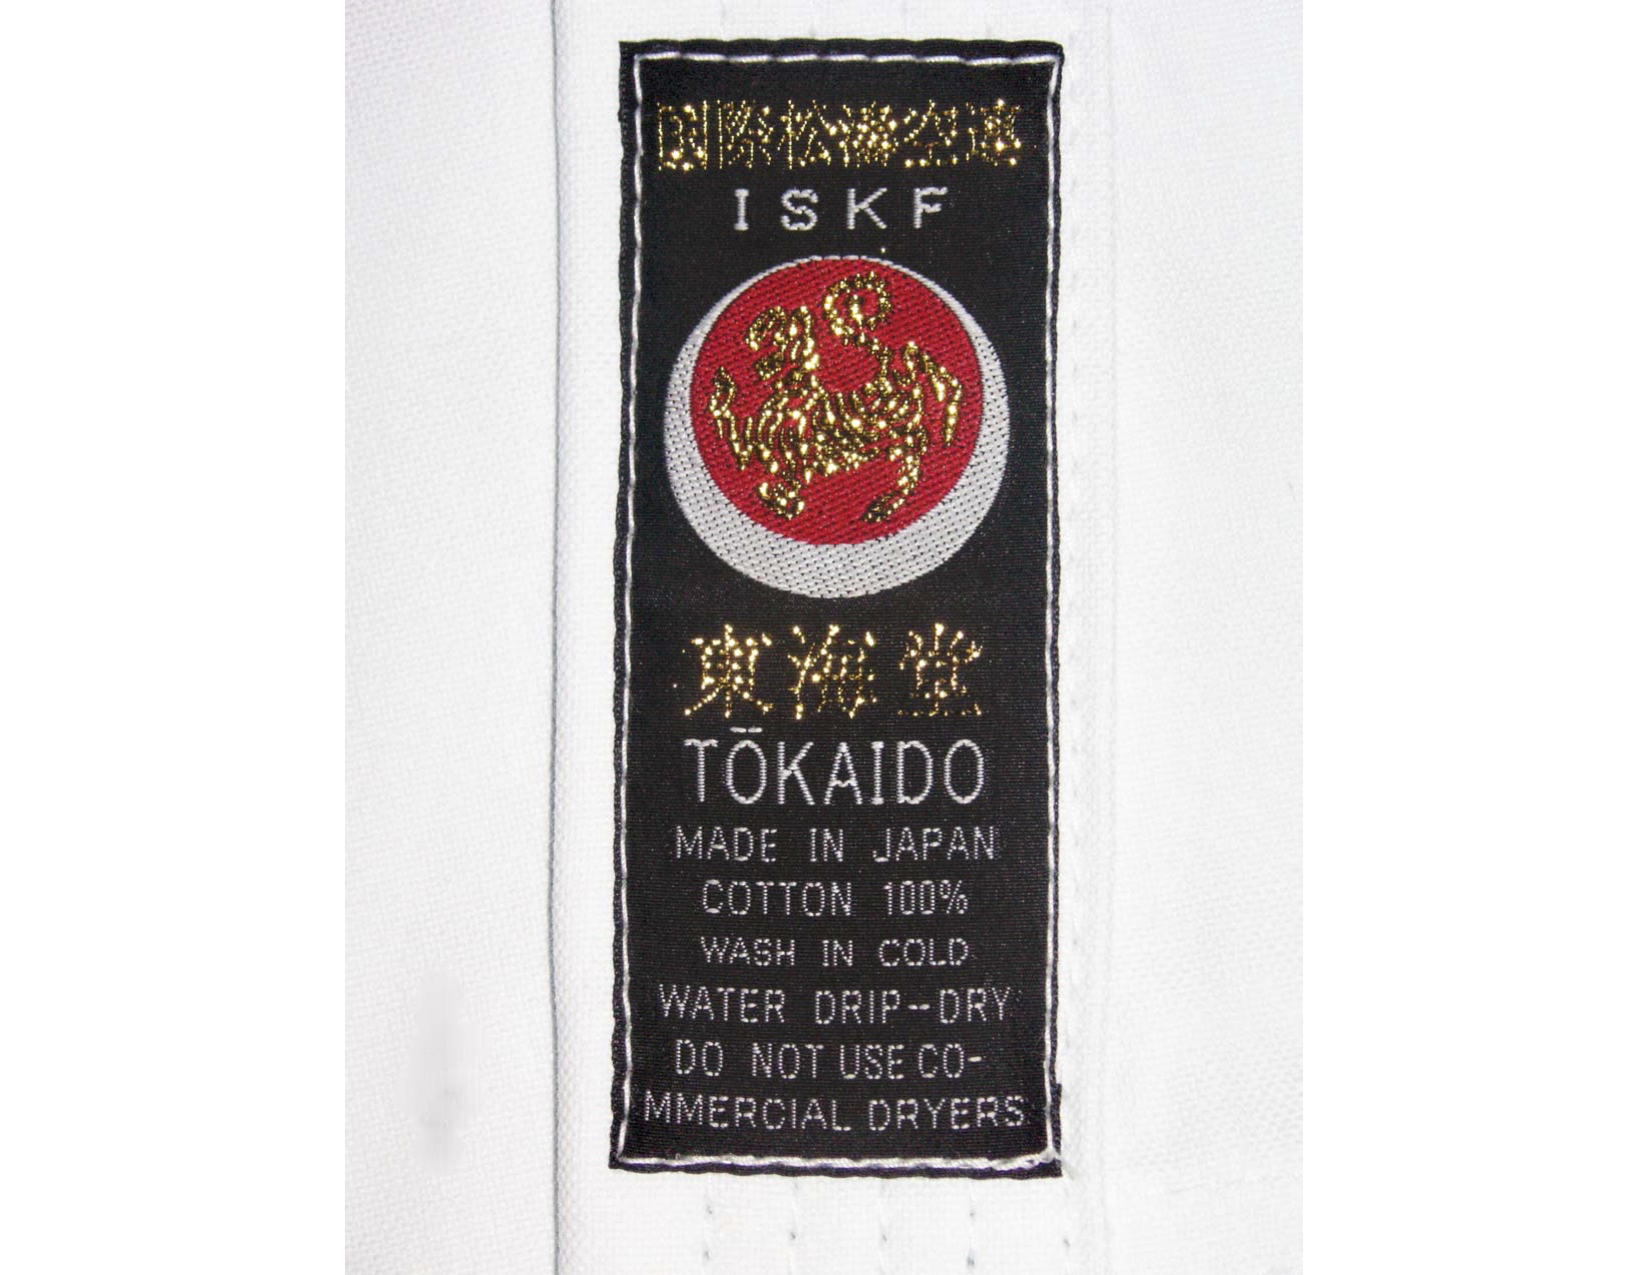 Tokaido label